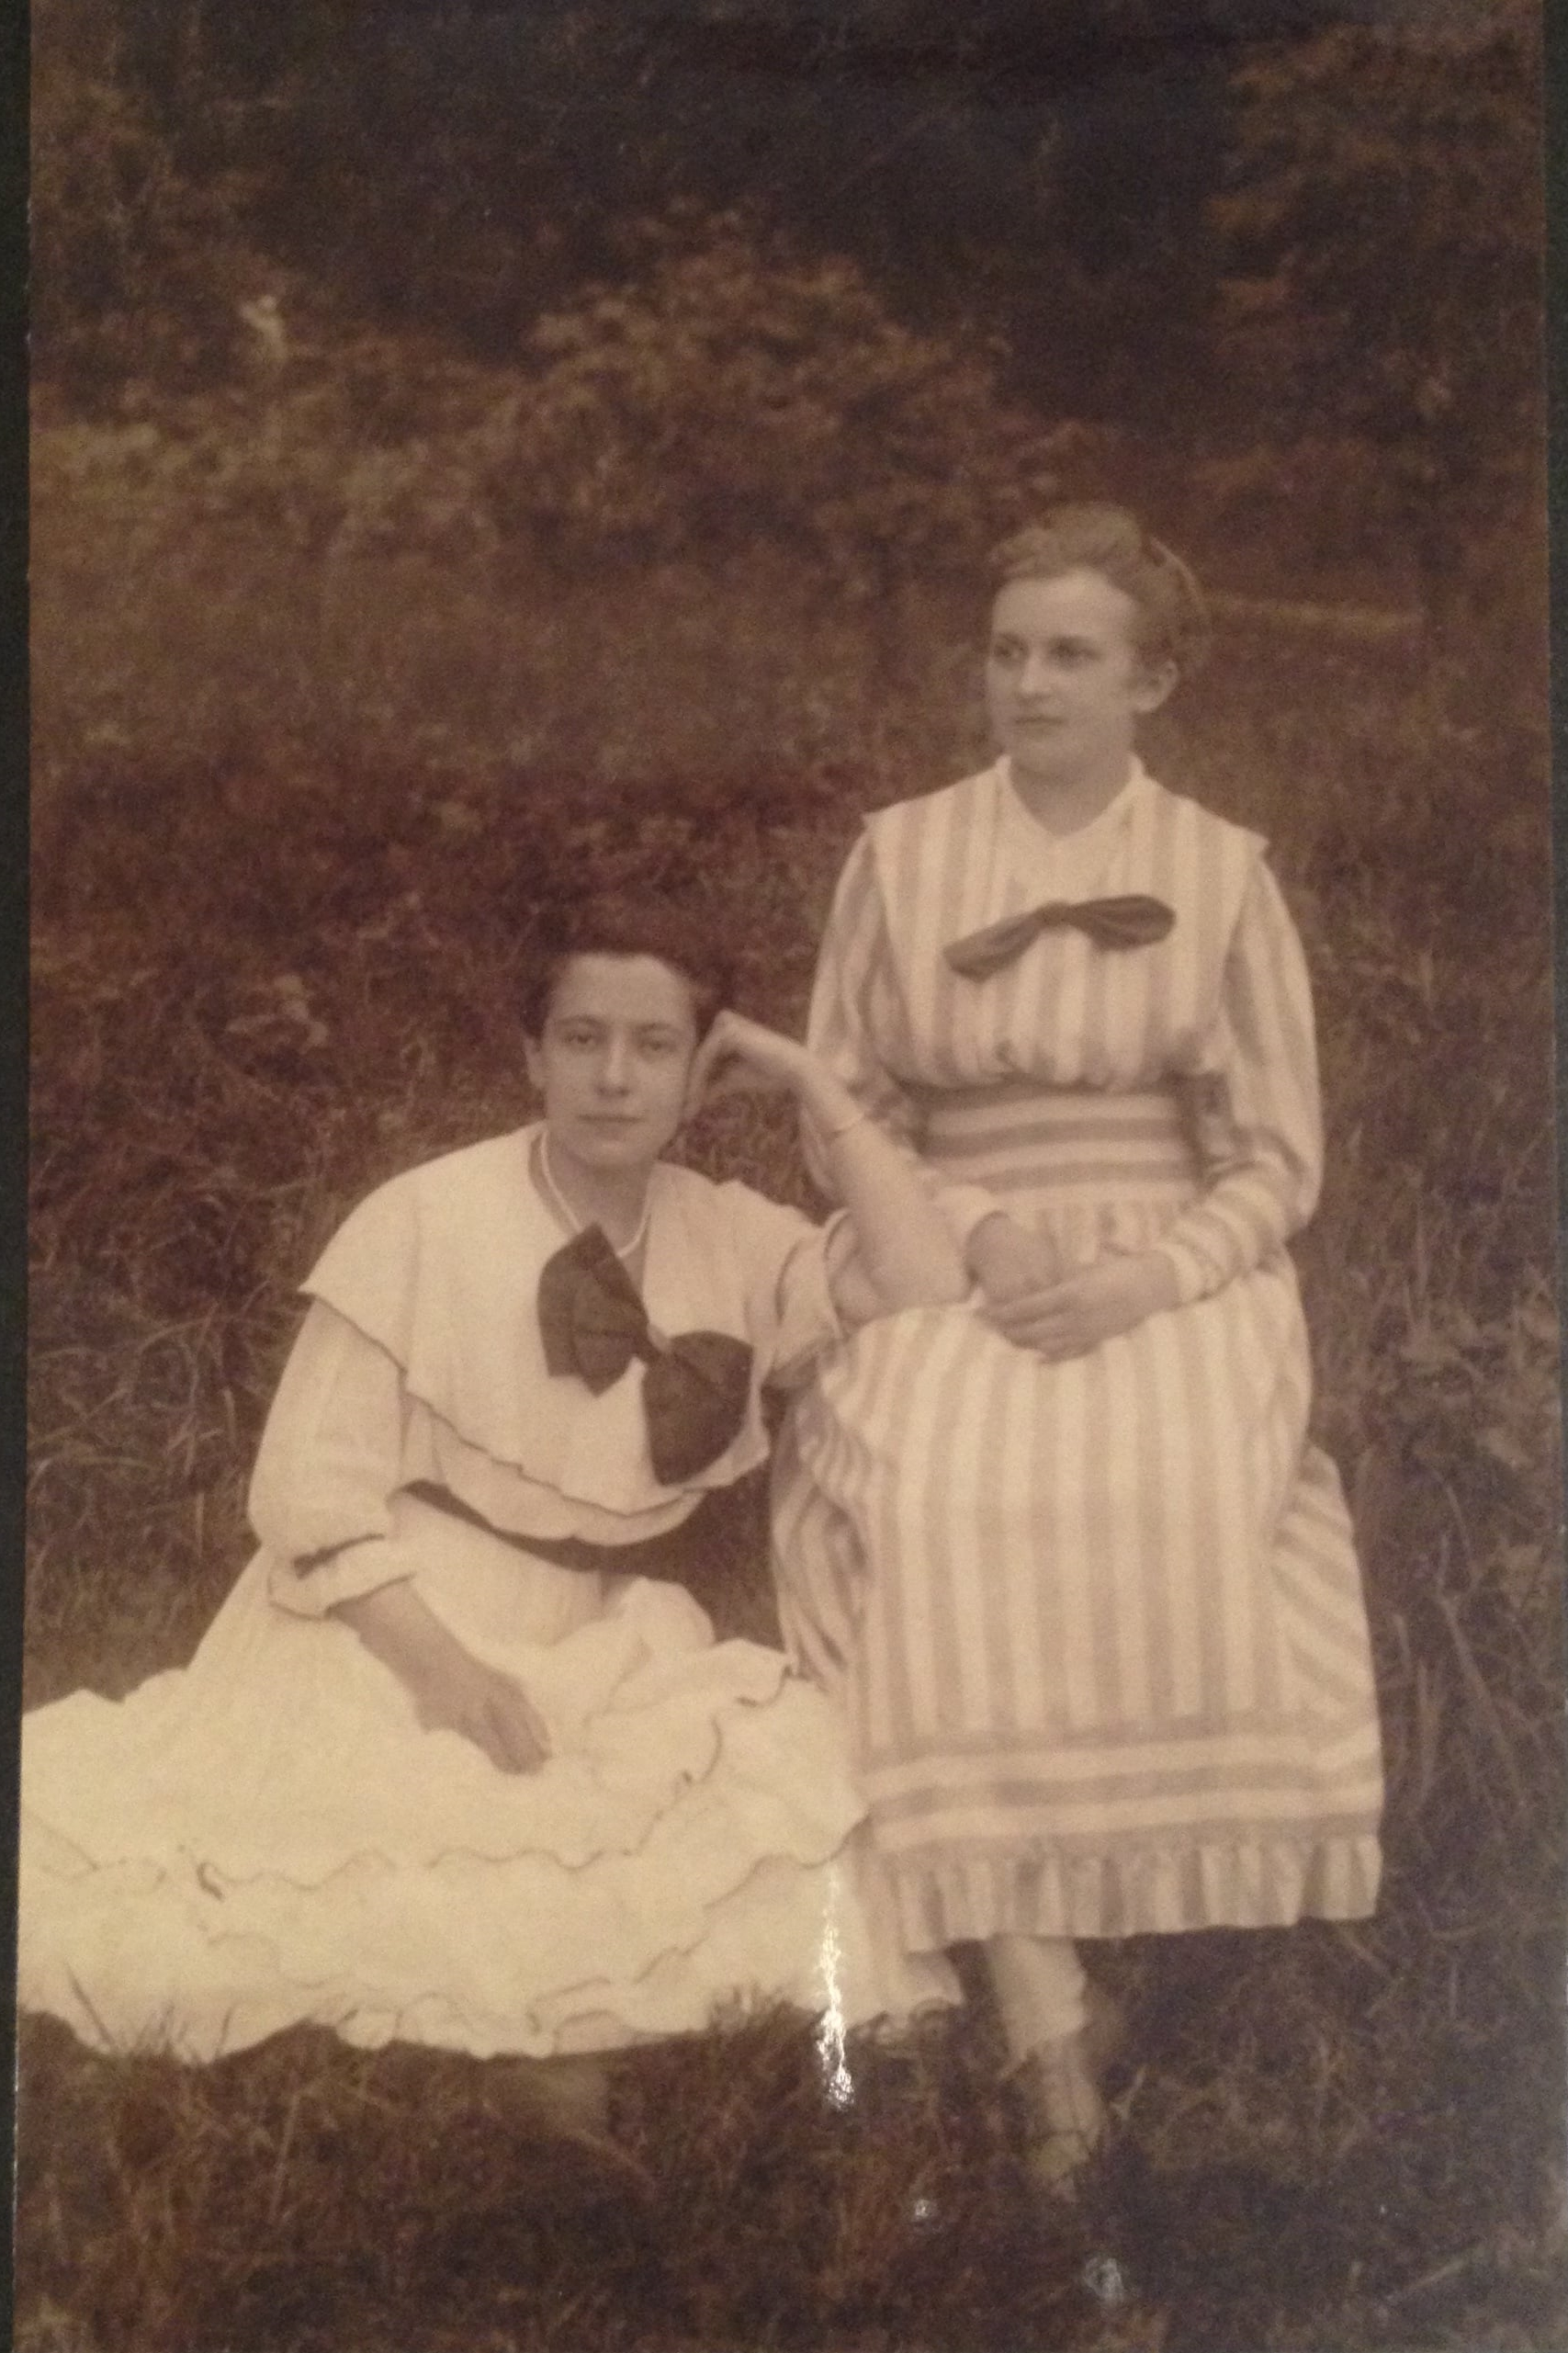 My grandmother and Frau Digeyser - her husband was a sales rep for Feodora Chocolates.